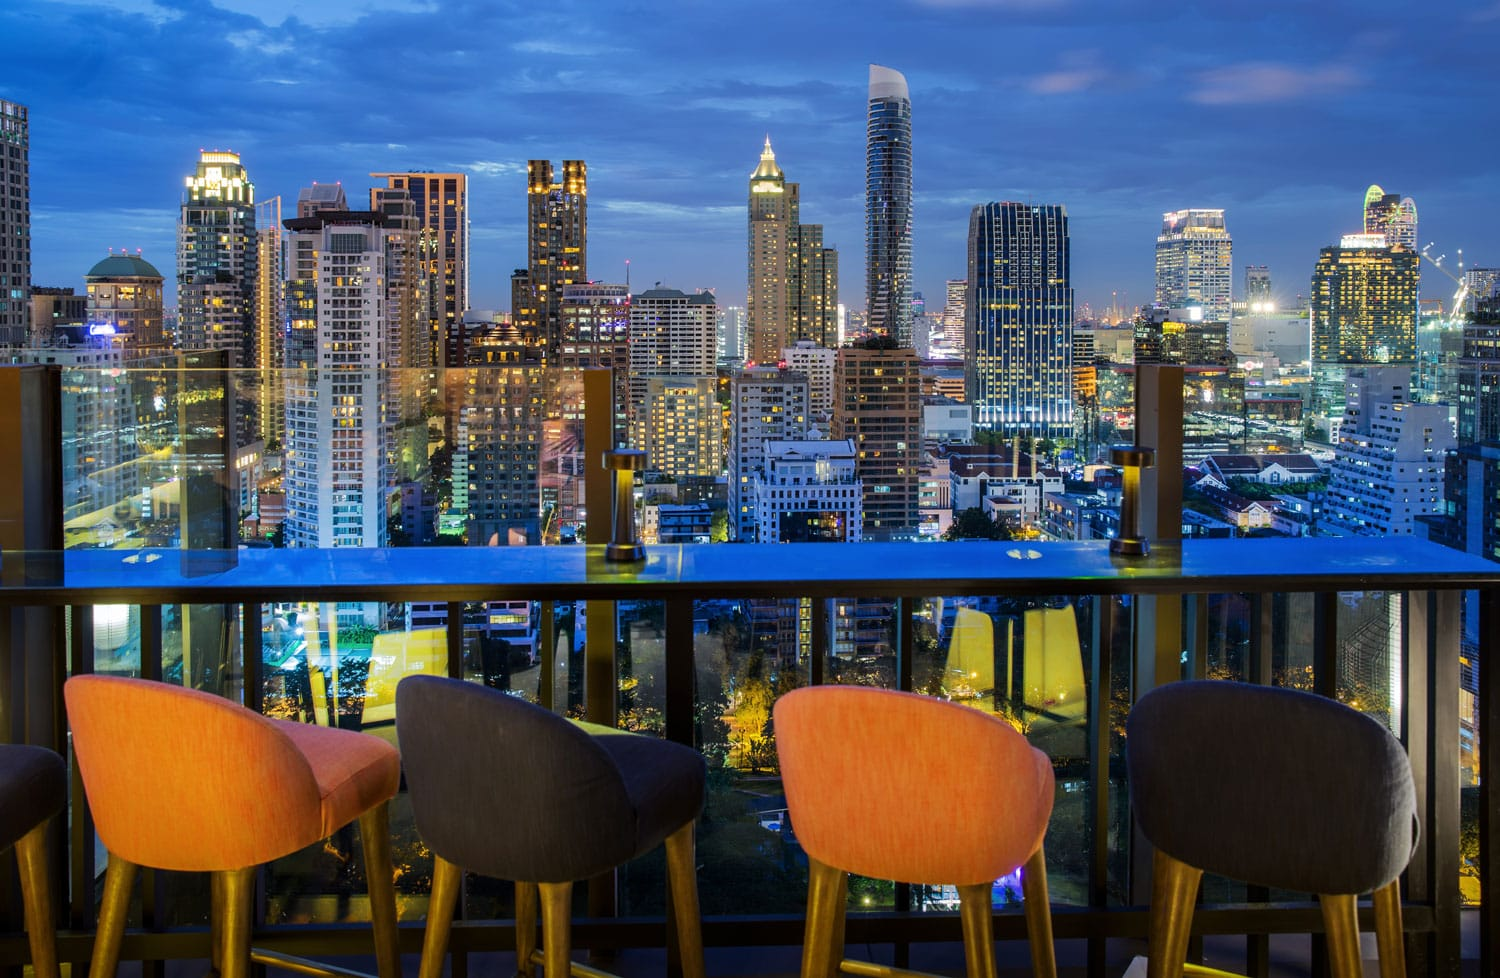 Bangkok city view point from rooftop of building, blue sky and city light, Thailand